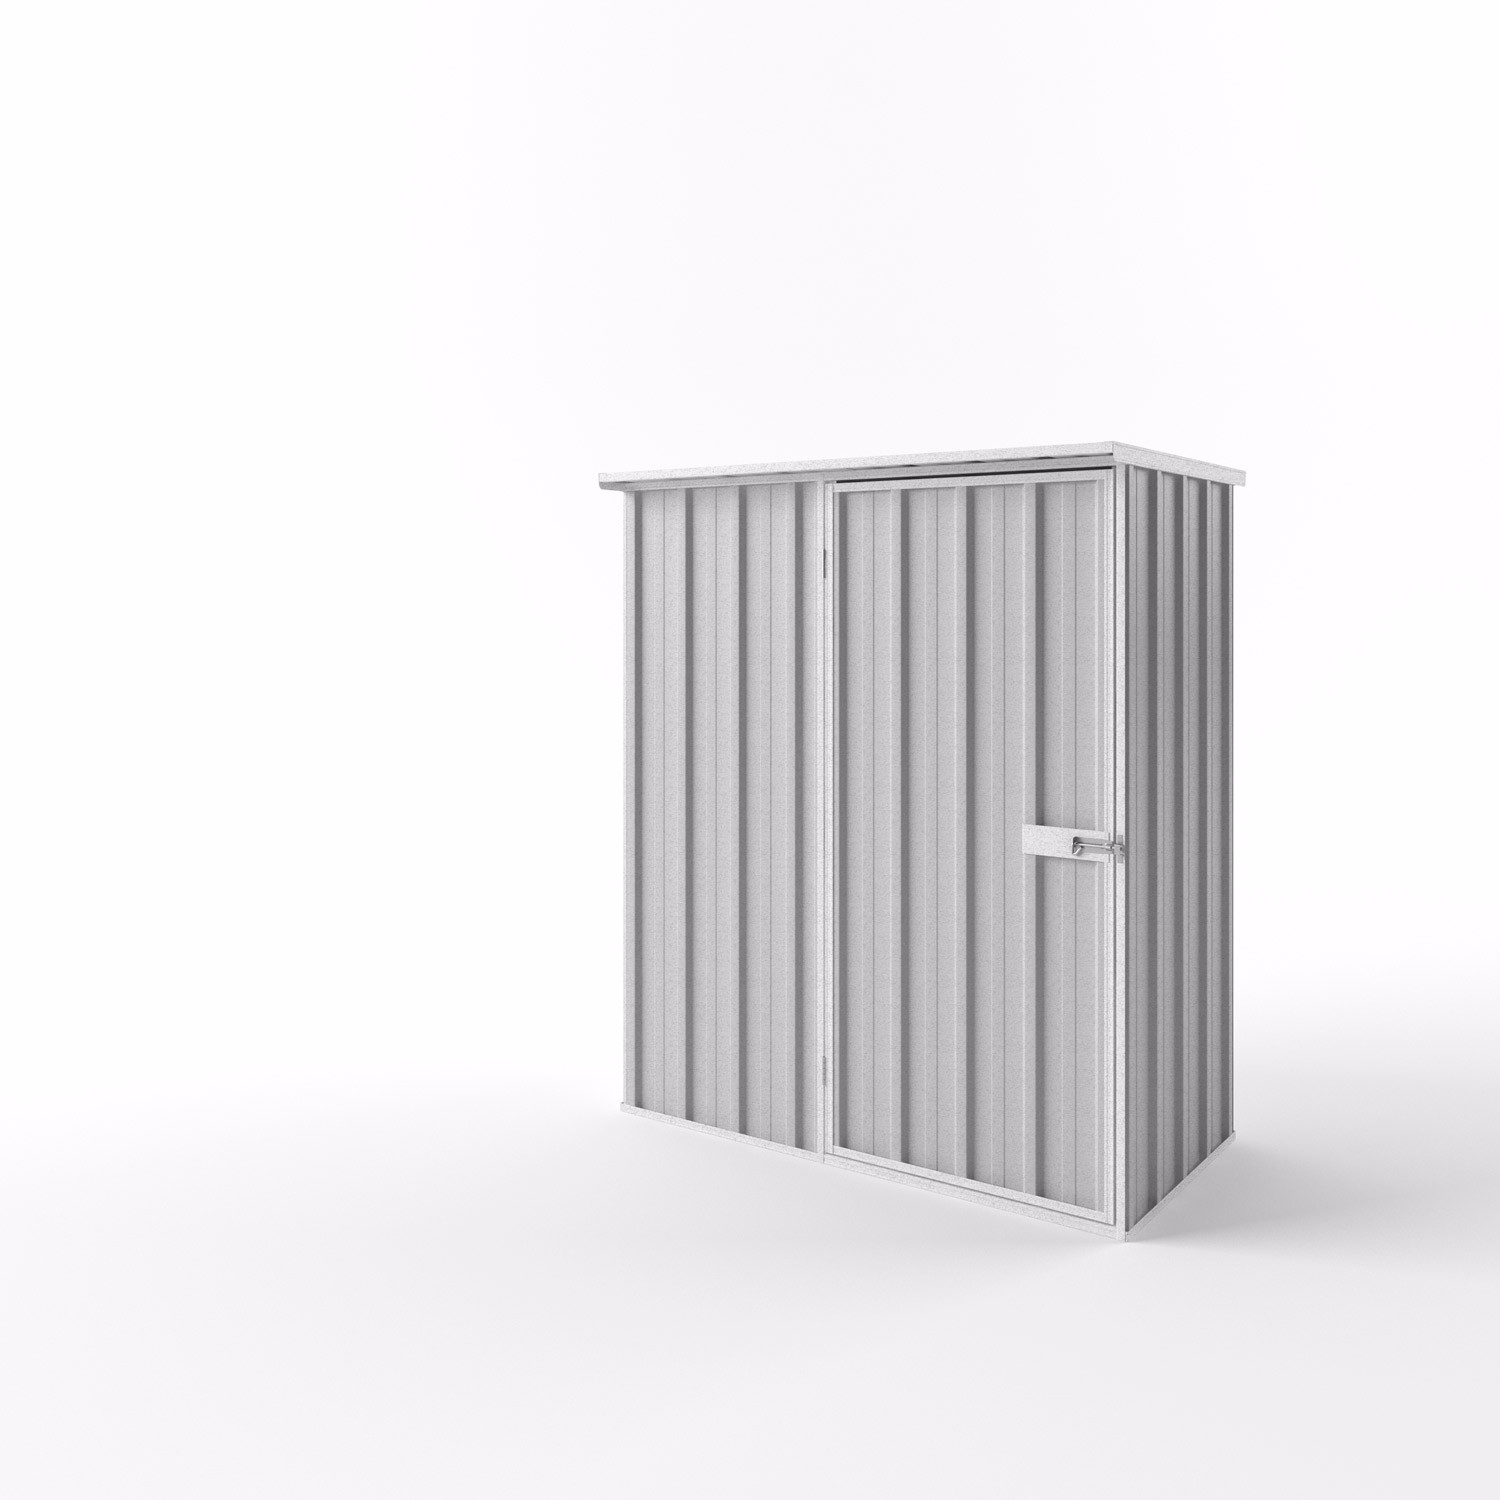 Flat Roof Garden Shed - 1.50m x 0.78m x 2.12m Height - Wide Span Sheds